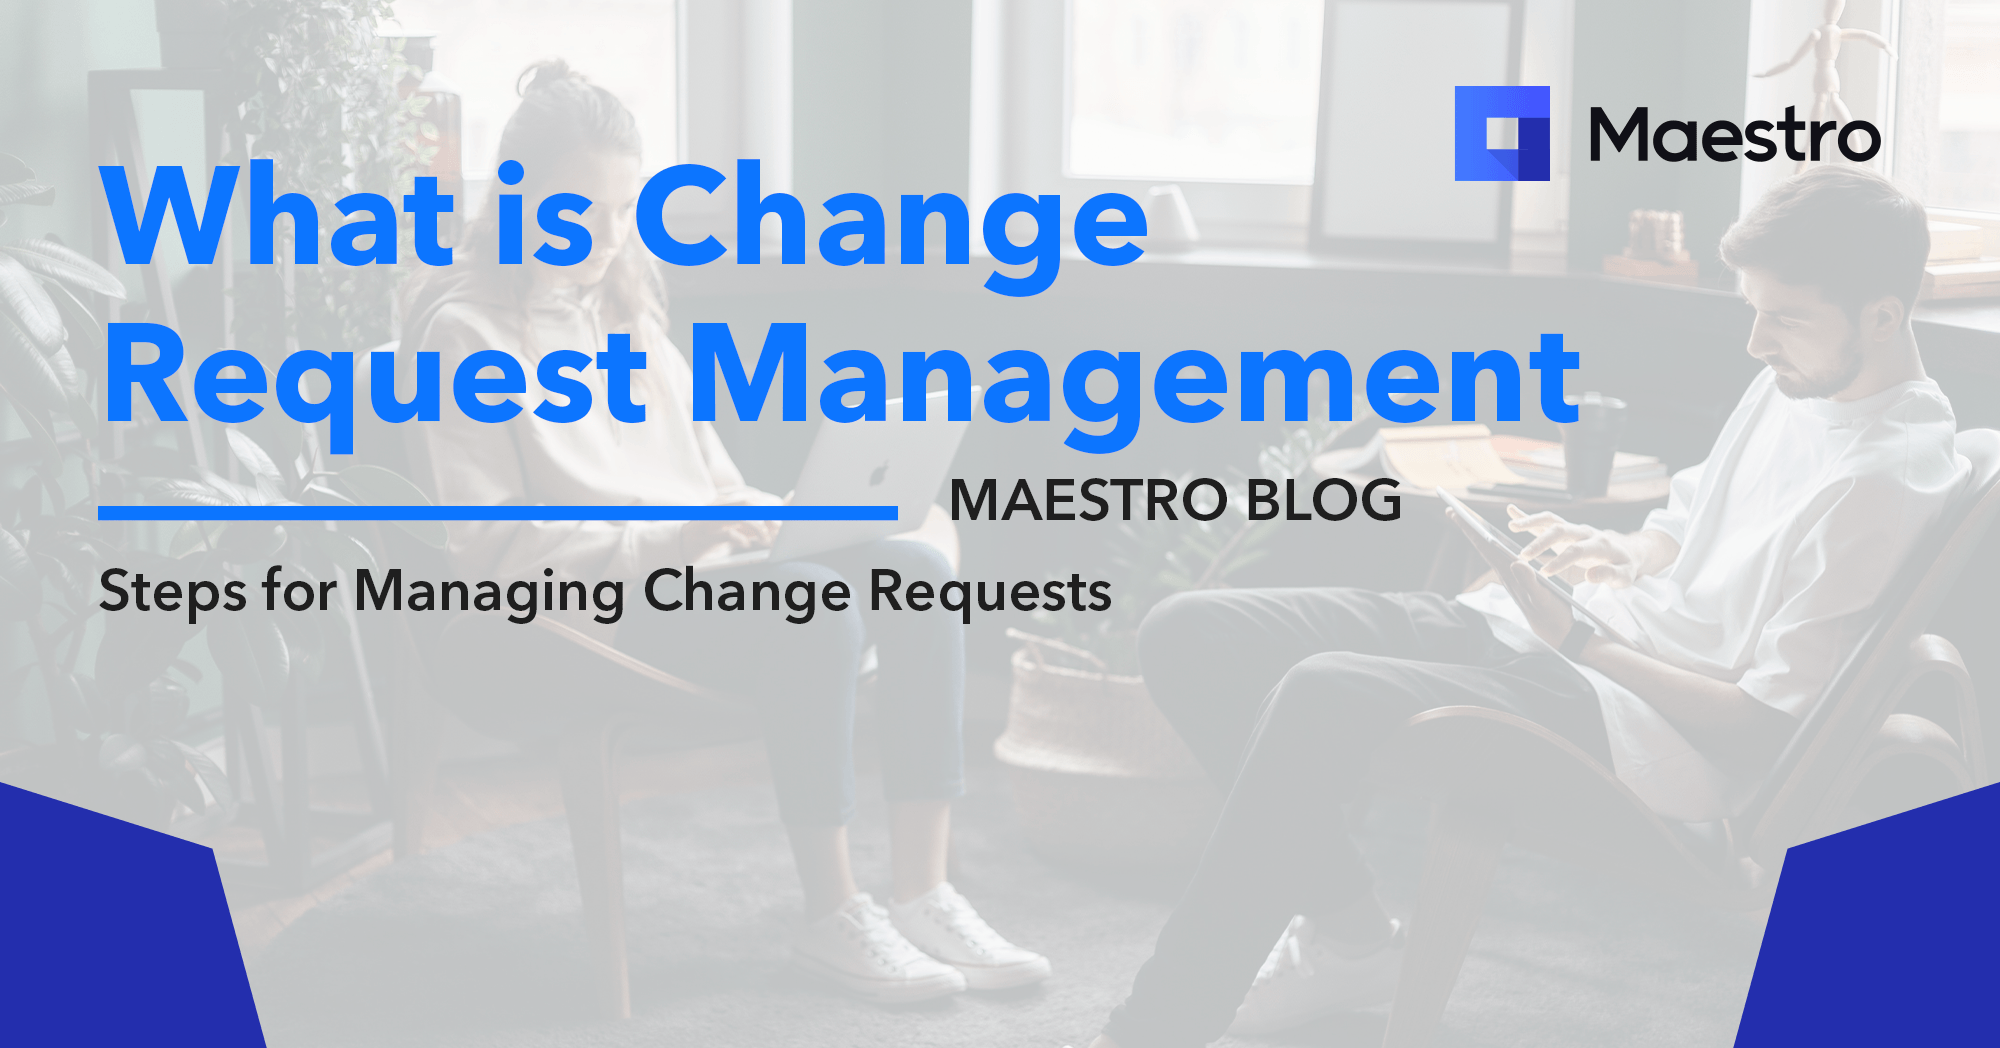 What is change request management